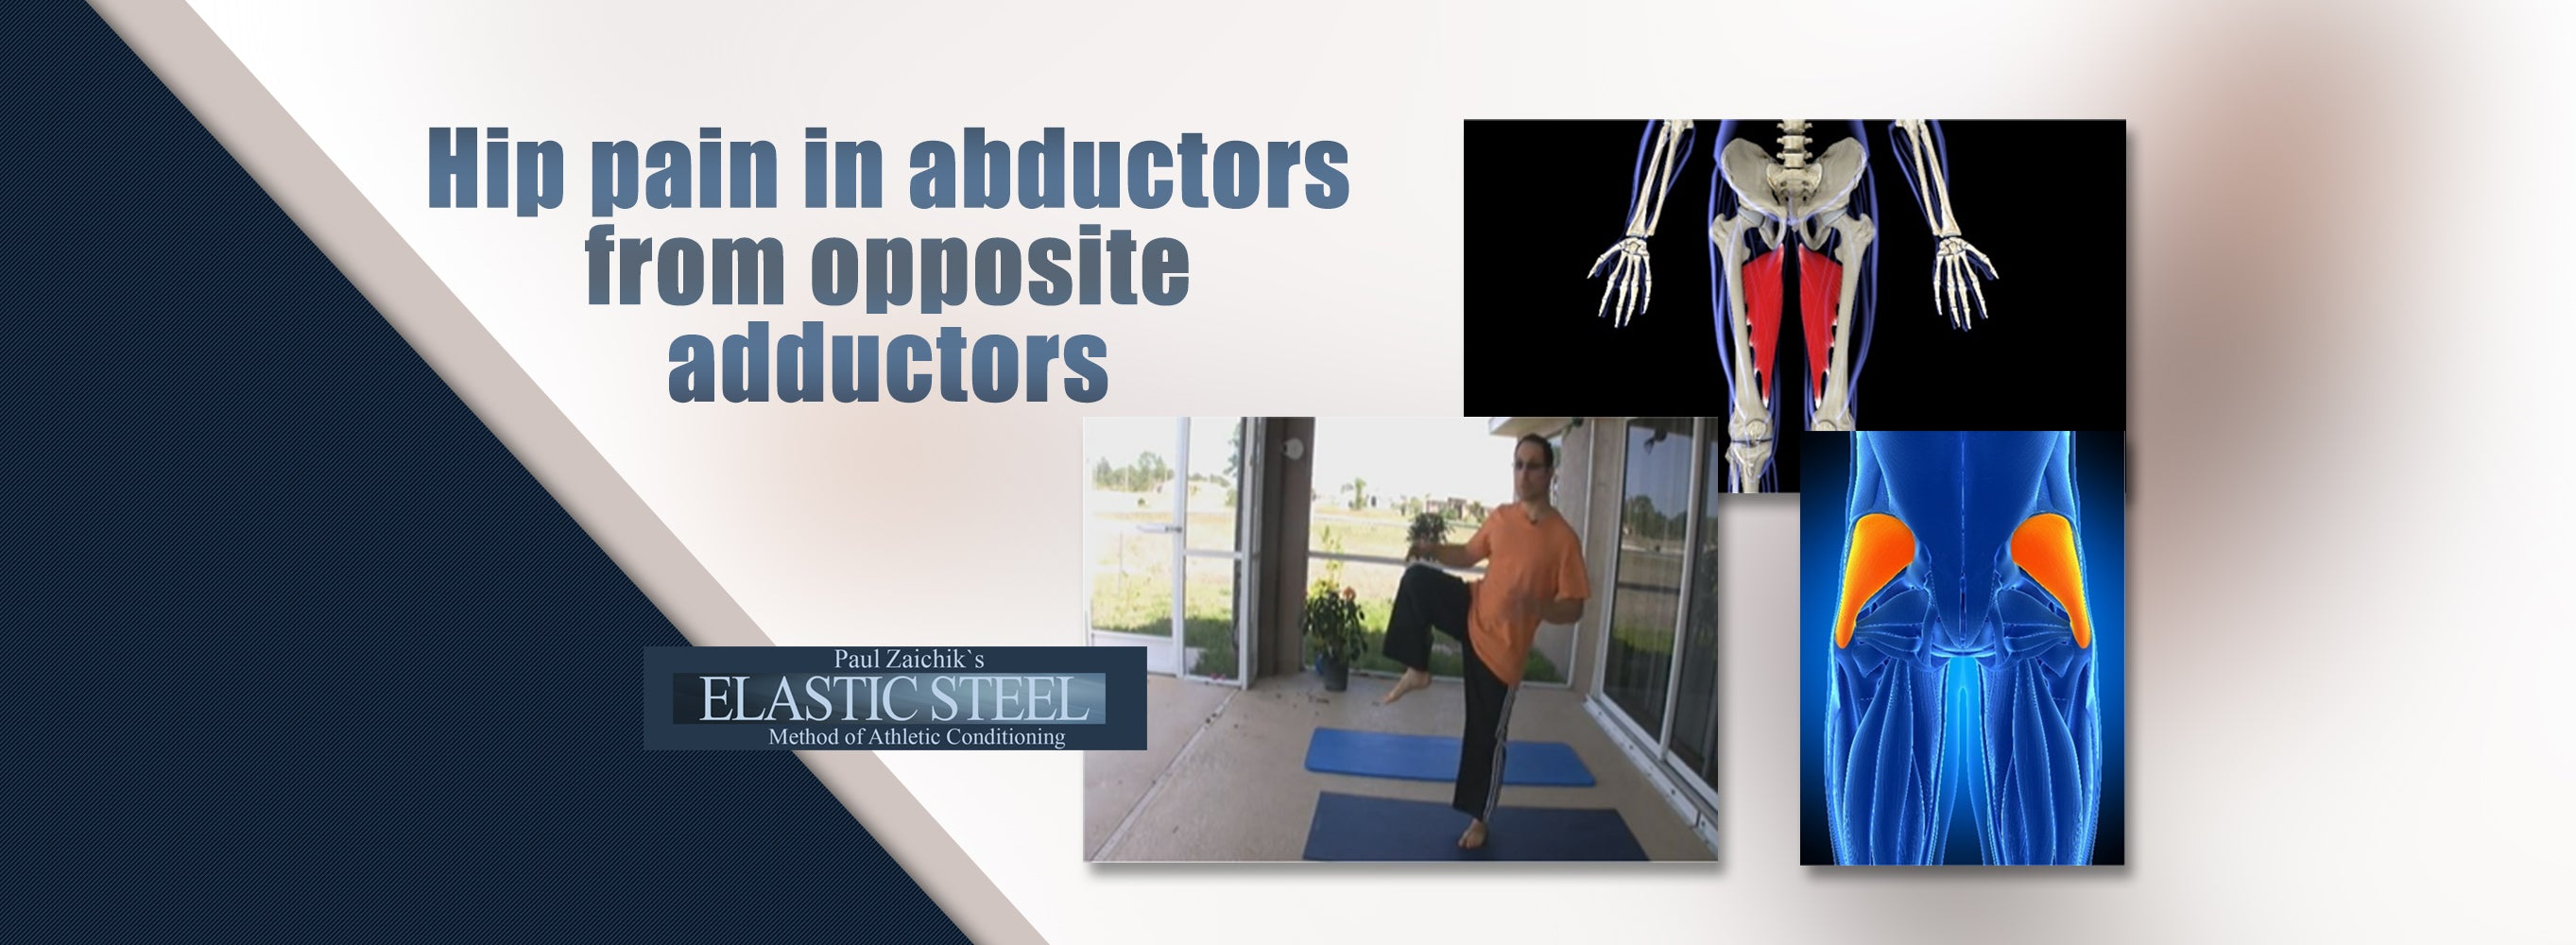 Hip Pain in Abductors From Opposite Adductors